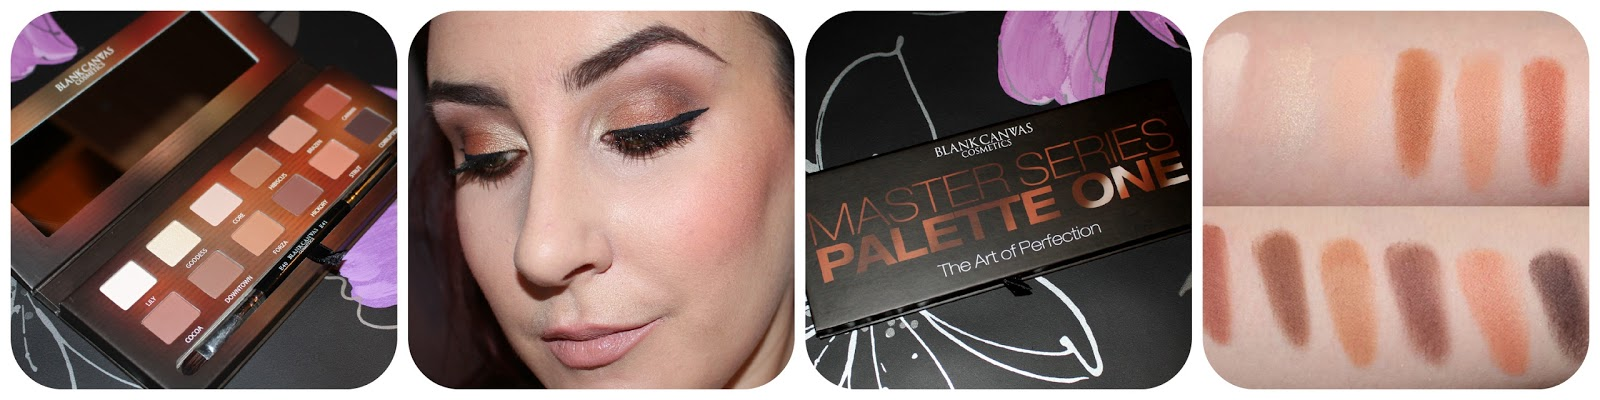 Master Series Palette One by Blank Canvas Cosmetics